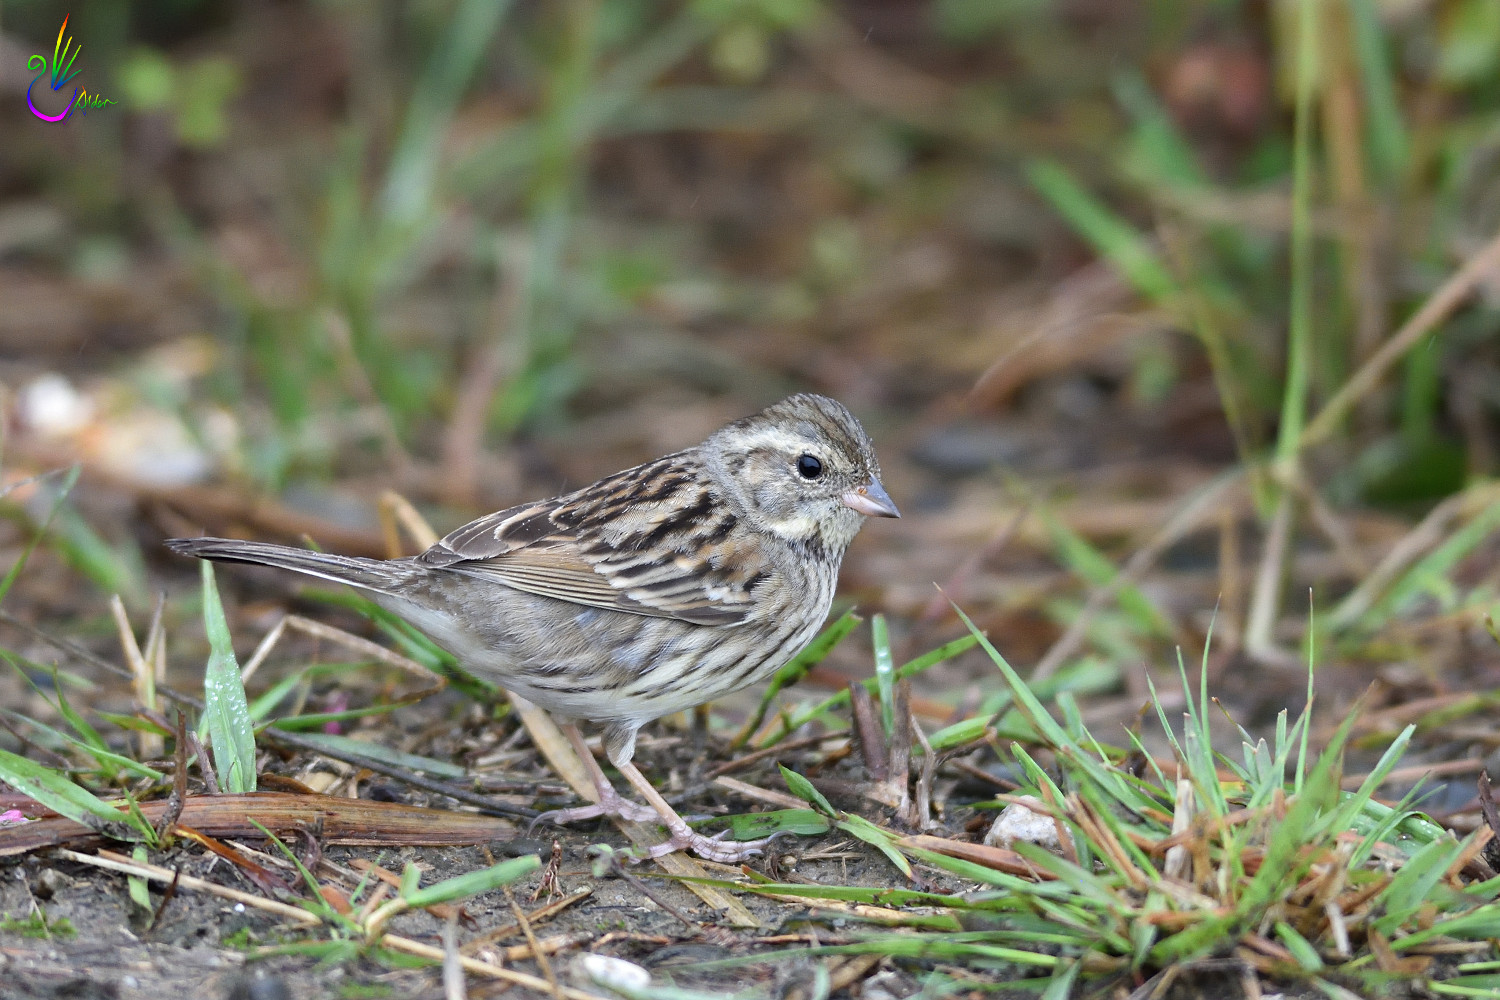 Black-faced_Bunting_7205